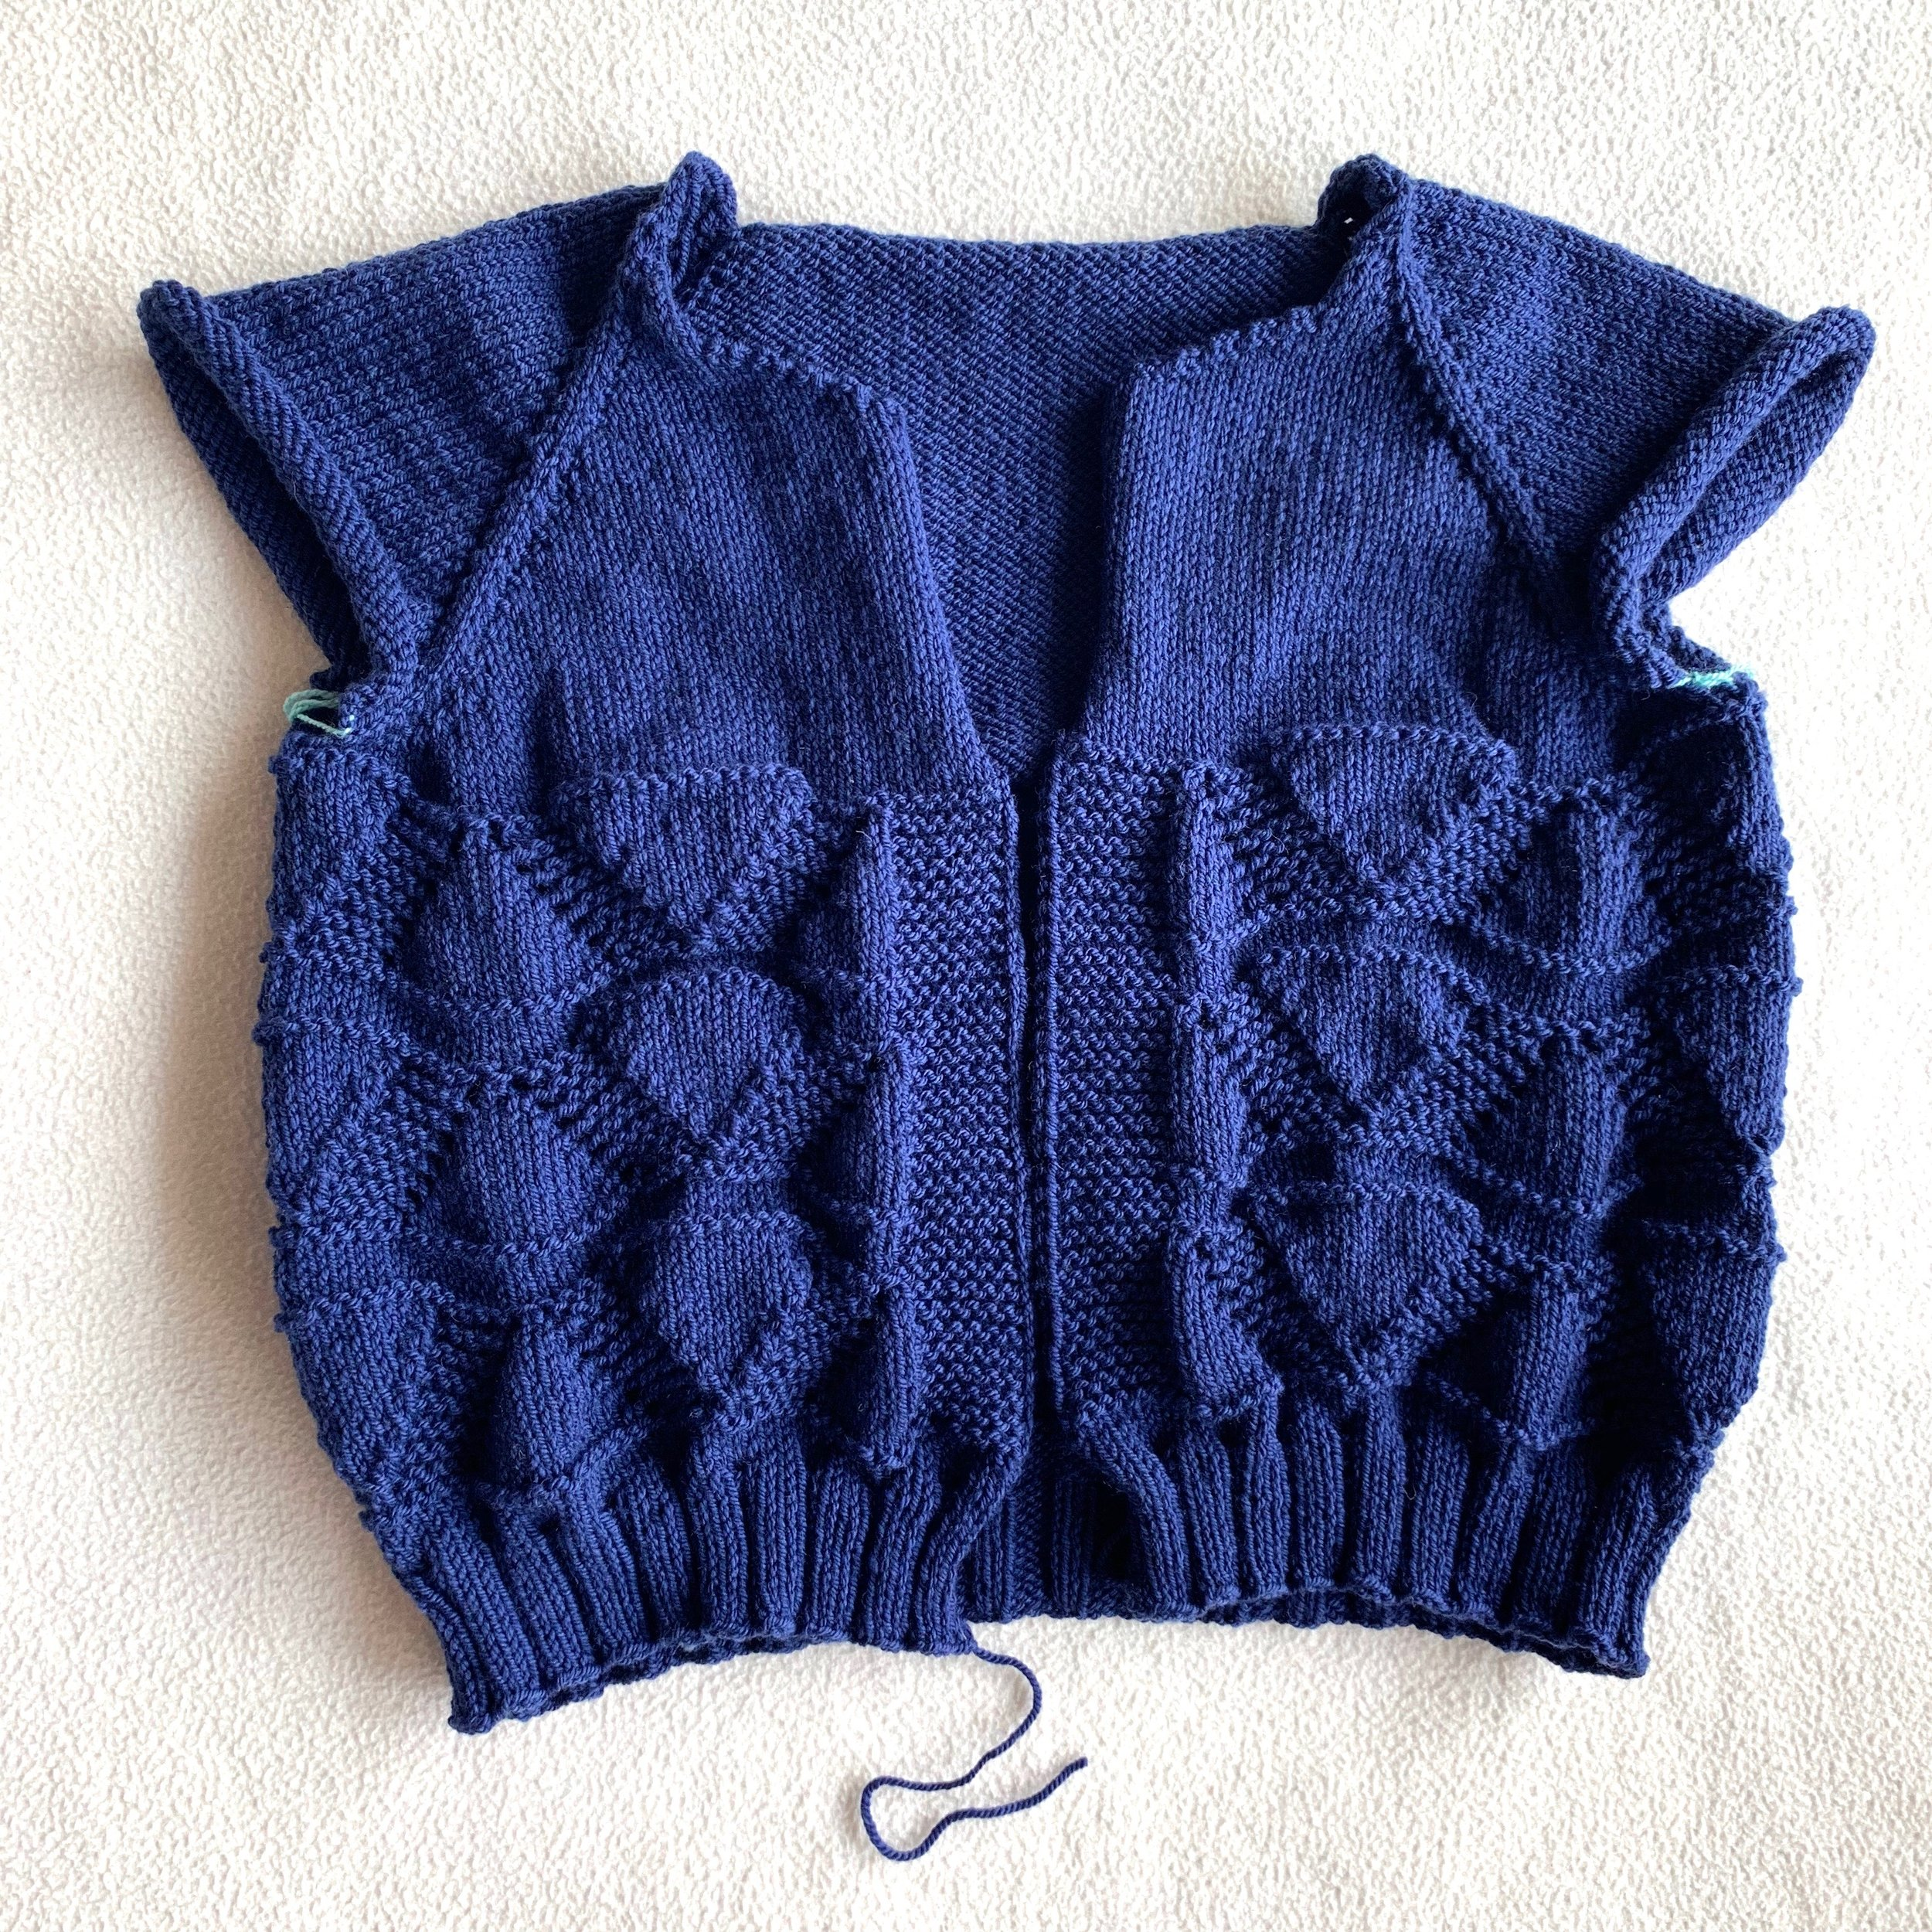 Foxtrot Cardigan in Wooly Worsted merino yarn